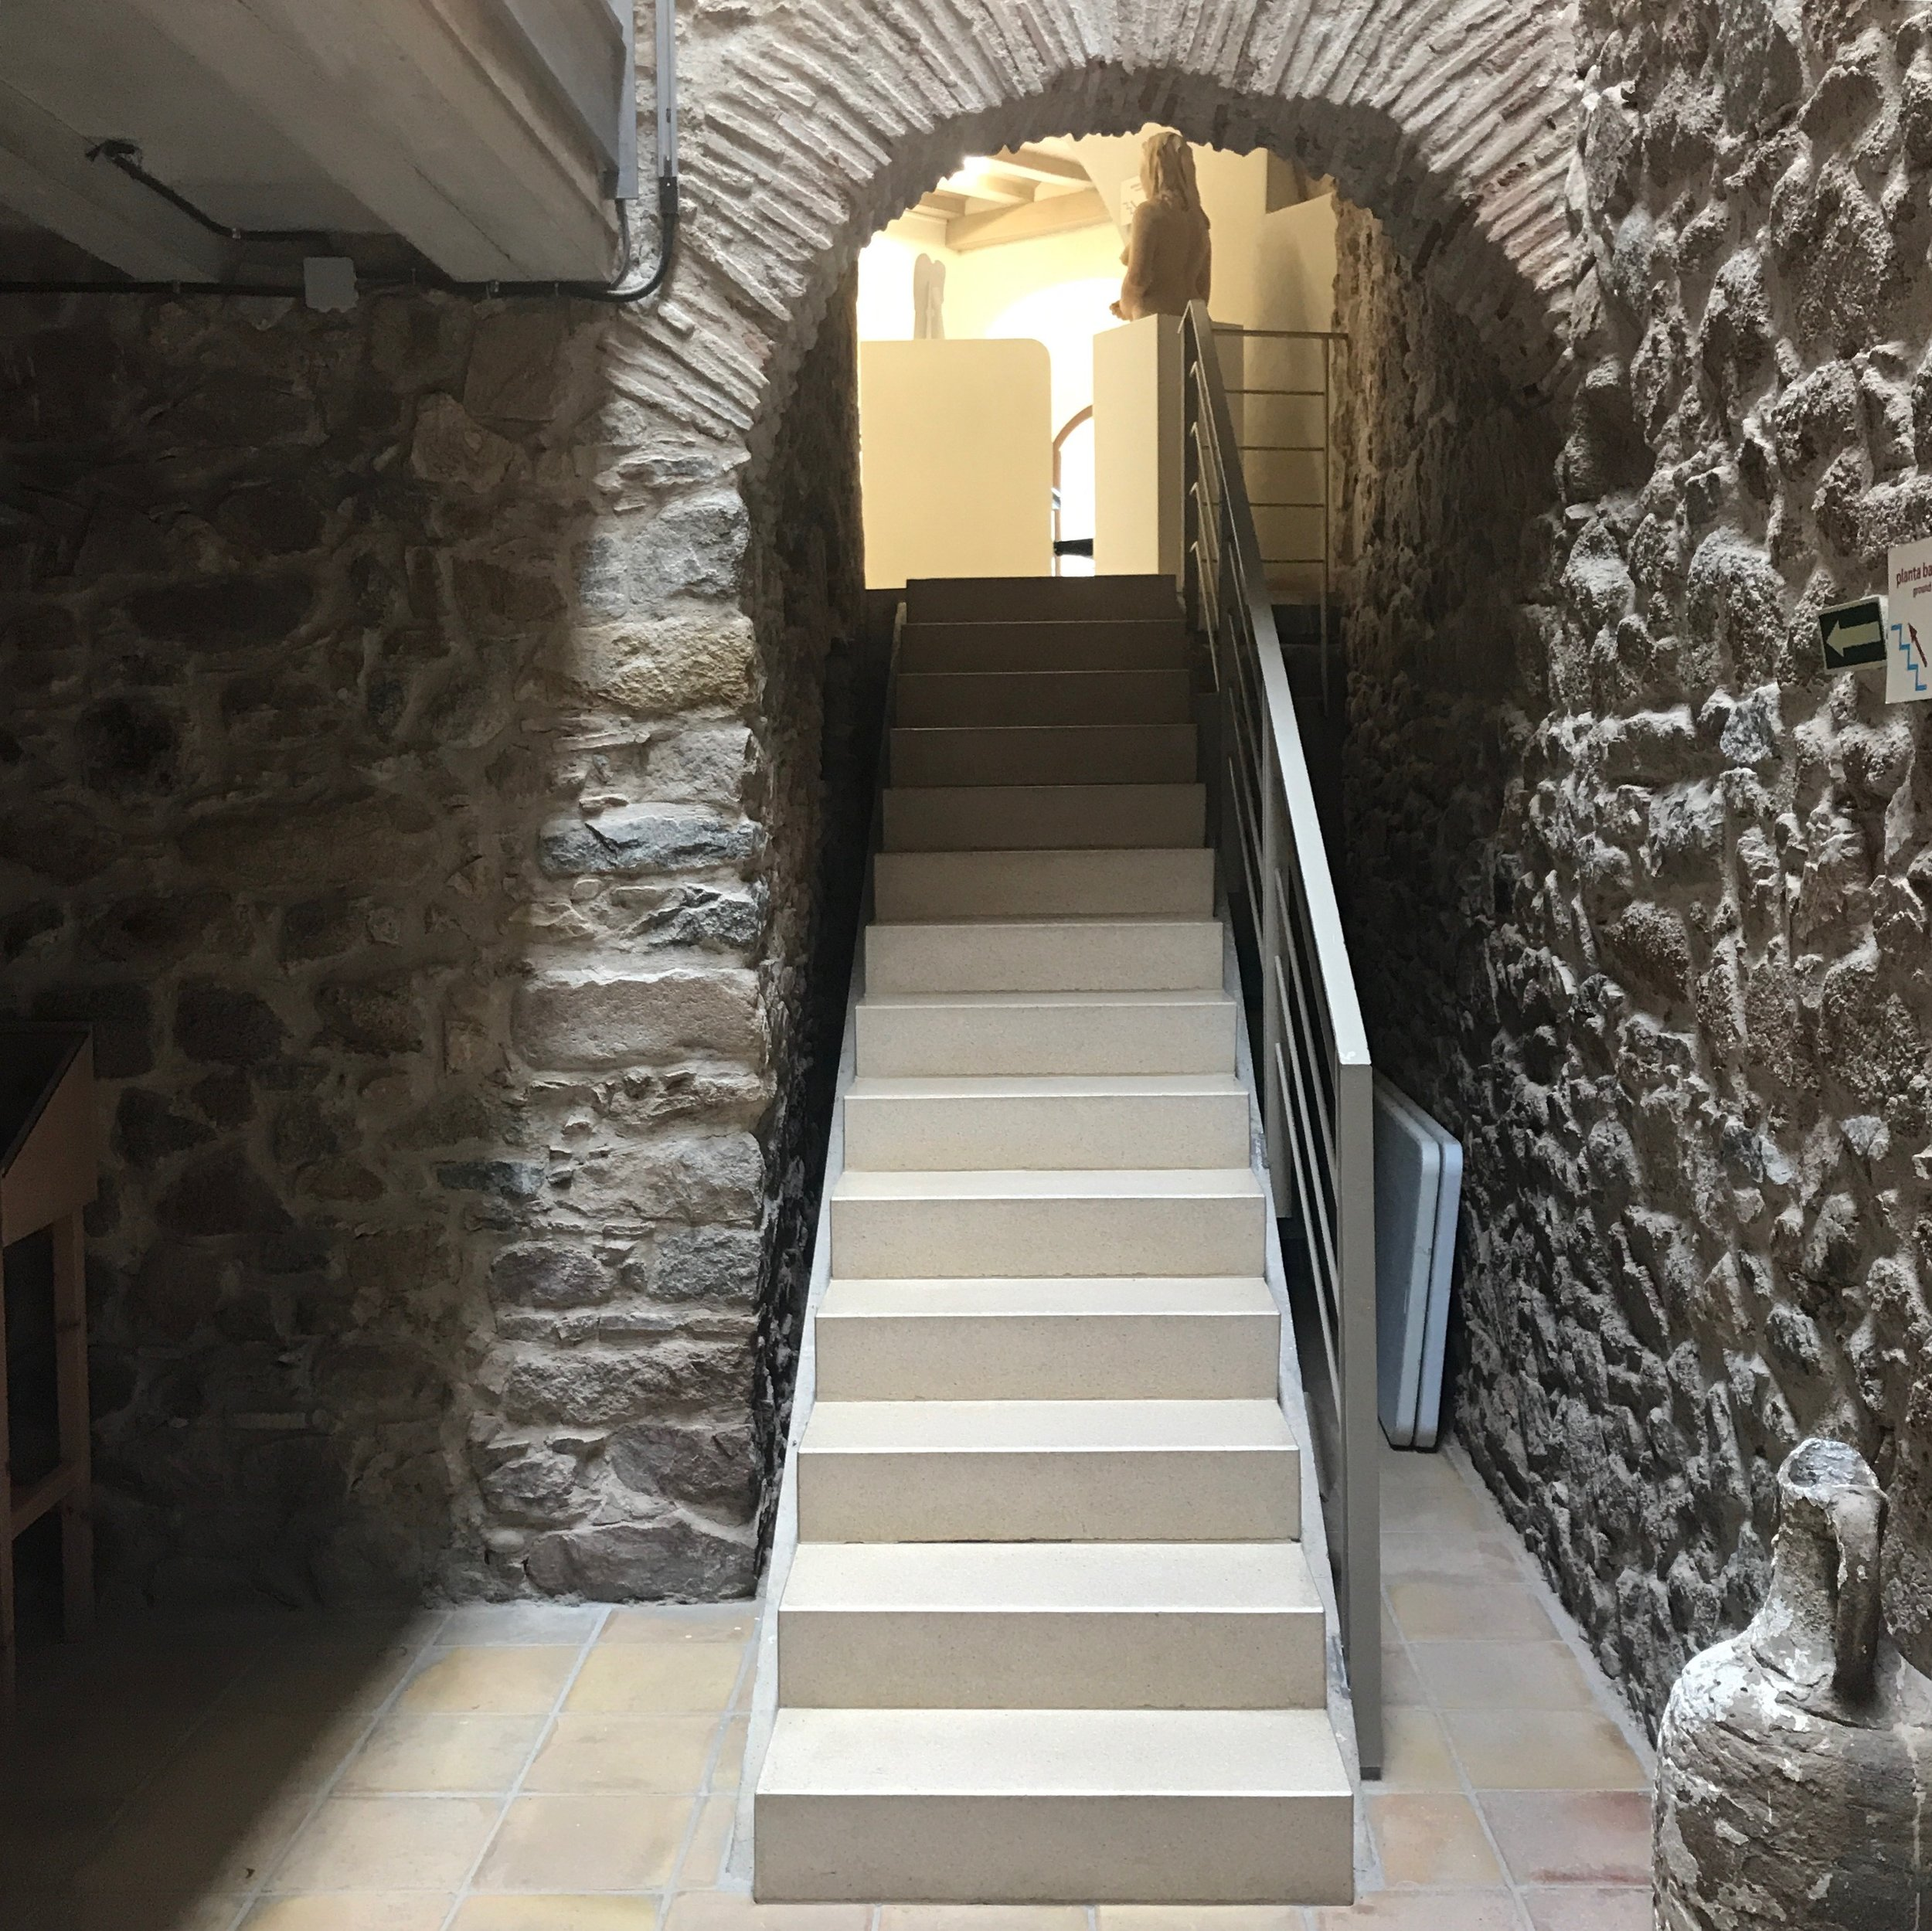 Stairs down to the antiquities, appropriately in the basement of the museum.